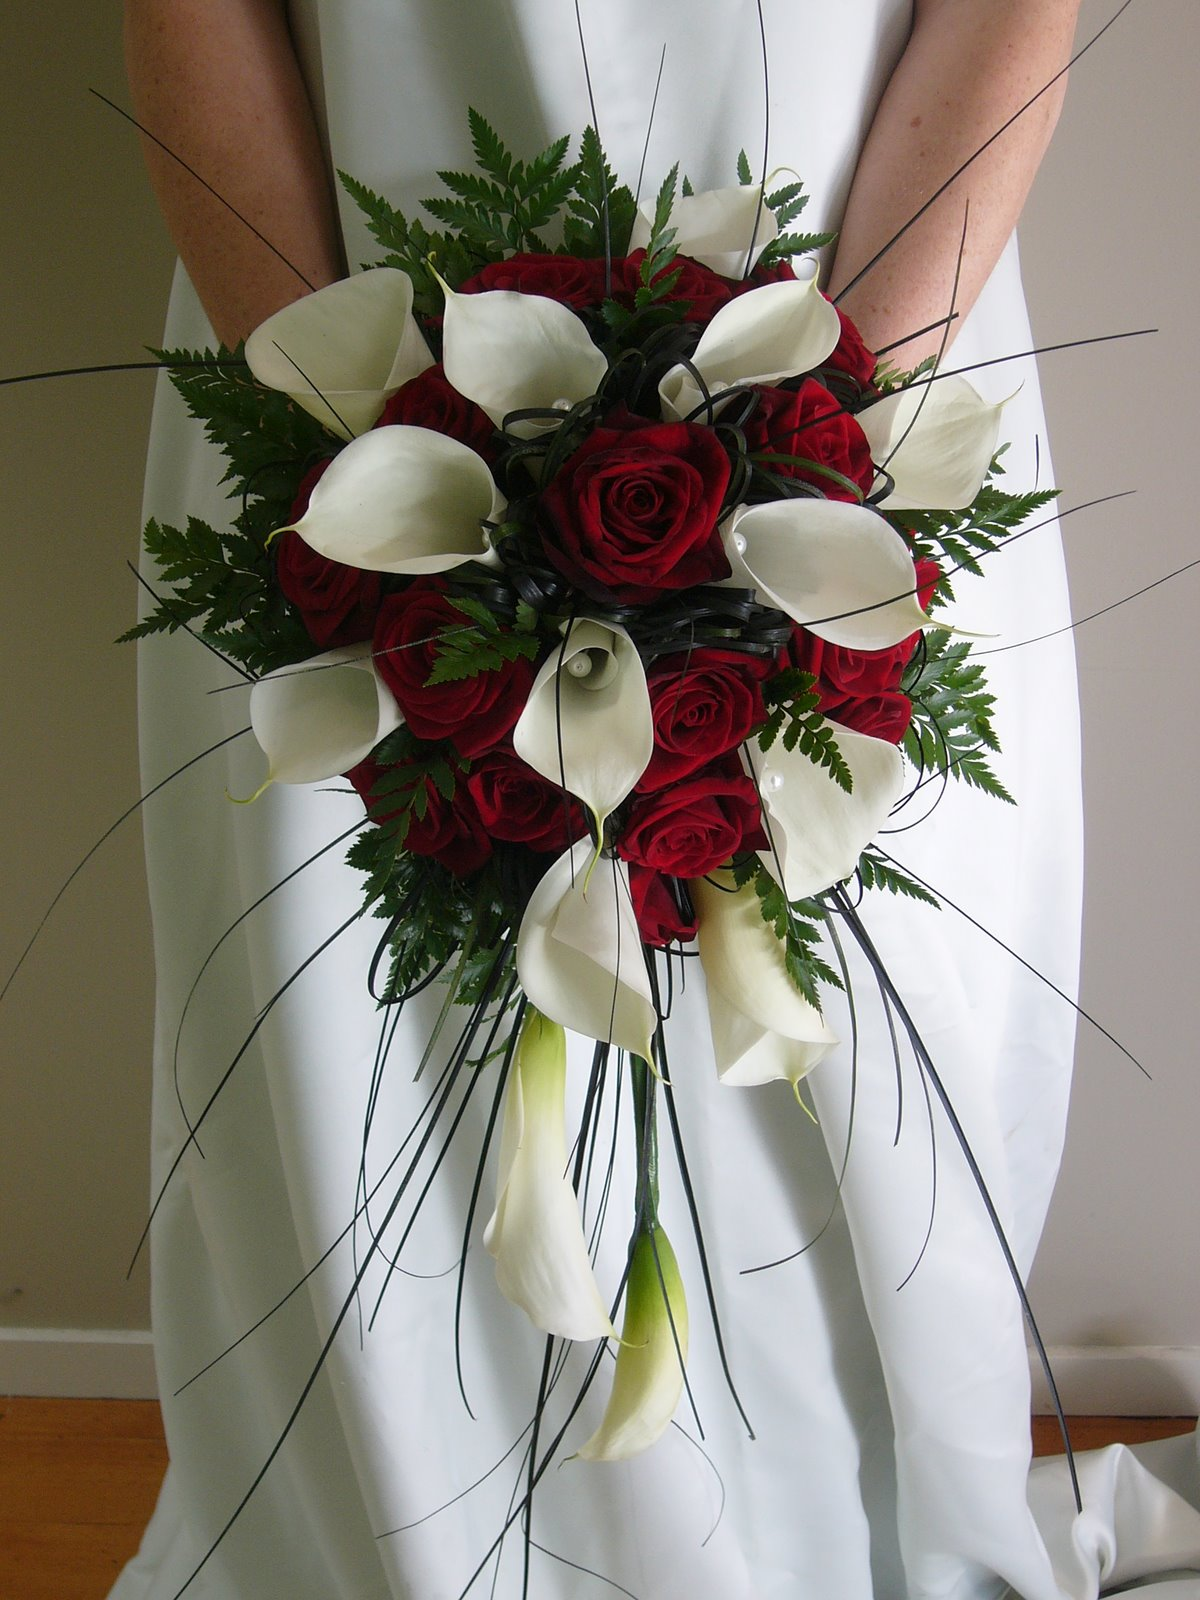 A Wedding Addict: Red And White Bridal Bouquet